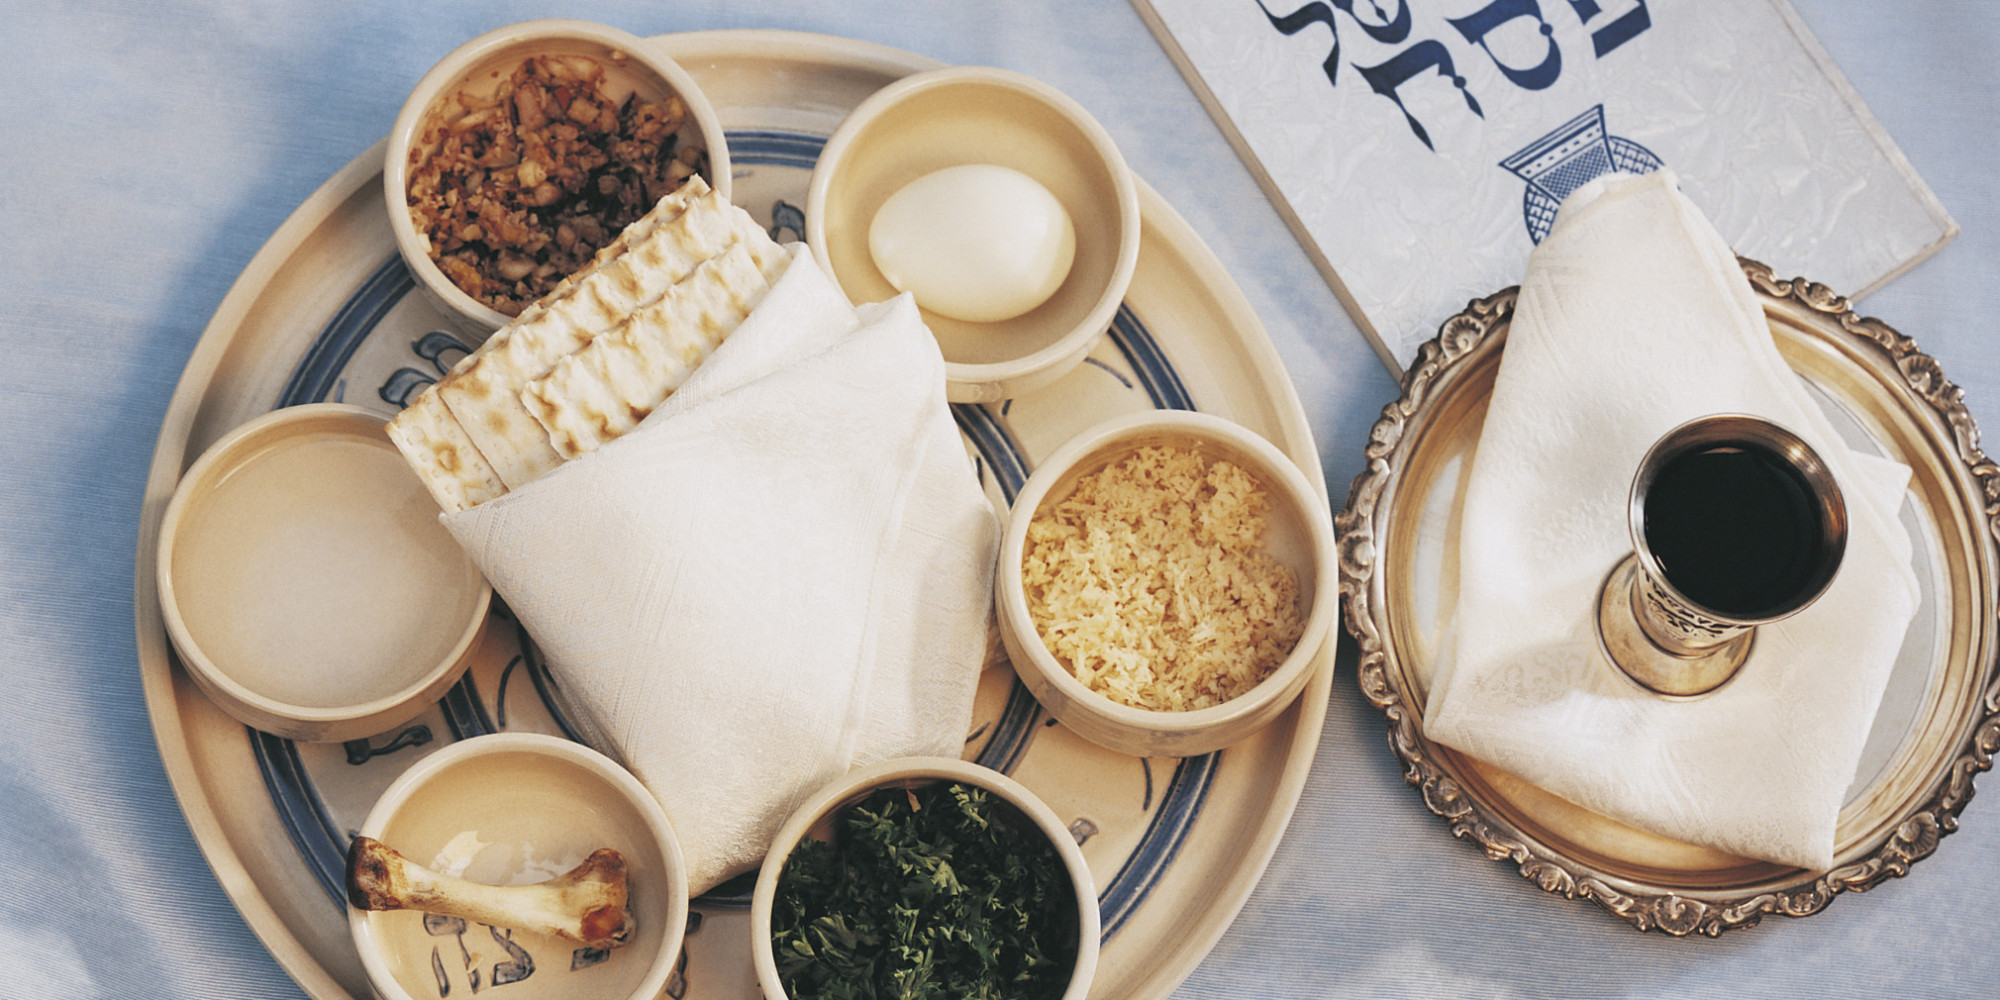 4 Helpful Hints For Amazing Passover Food